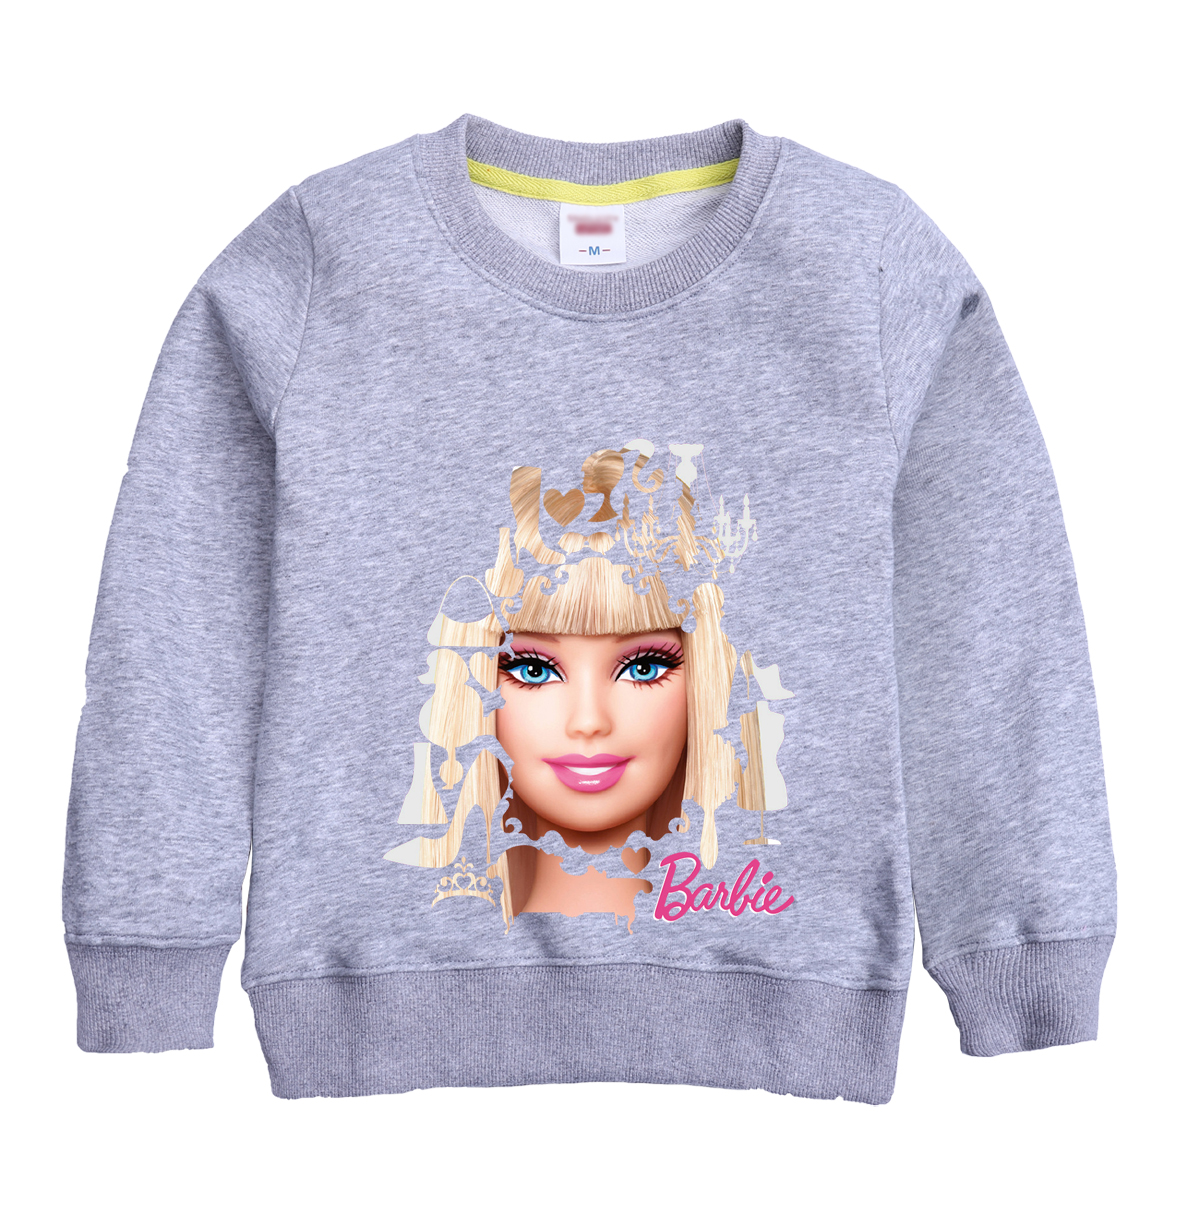 f24c0814a 2017 Winter autumn sweatshirt girl s hooded clothing for lovely girl  pattern printed hot top sweater design